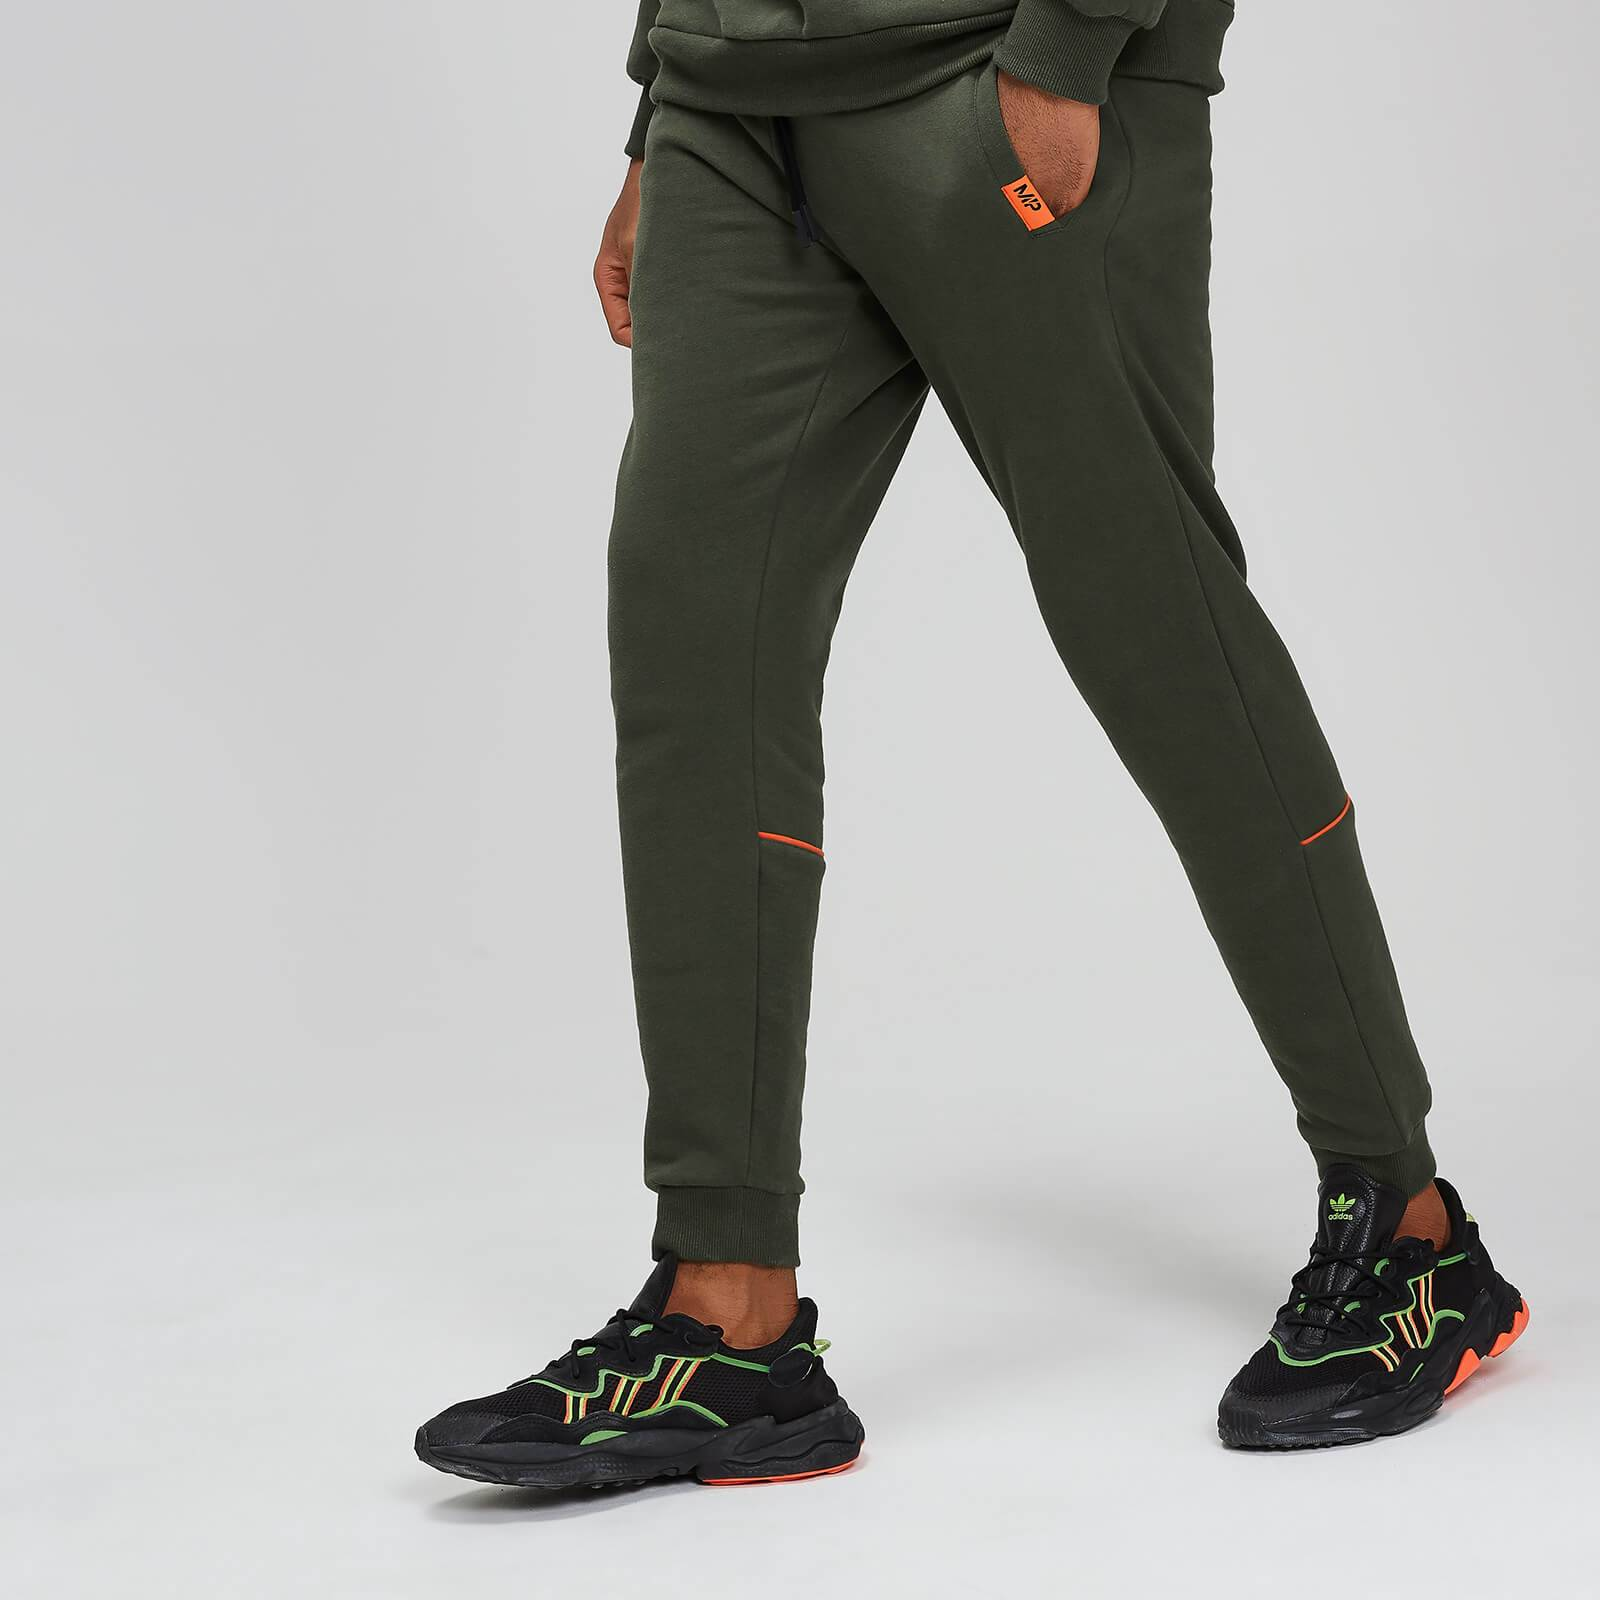 Myprotein MP Rest Day Men's Piped Calf Joggers - Army Green - XS